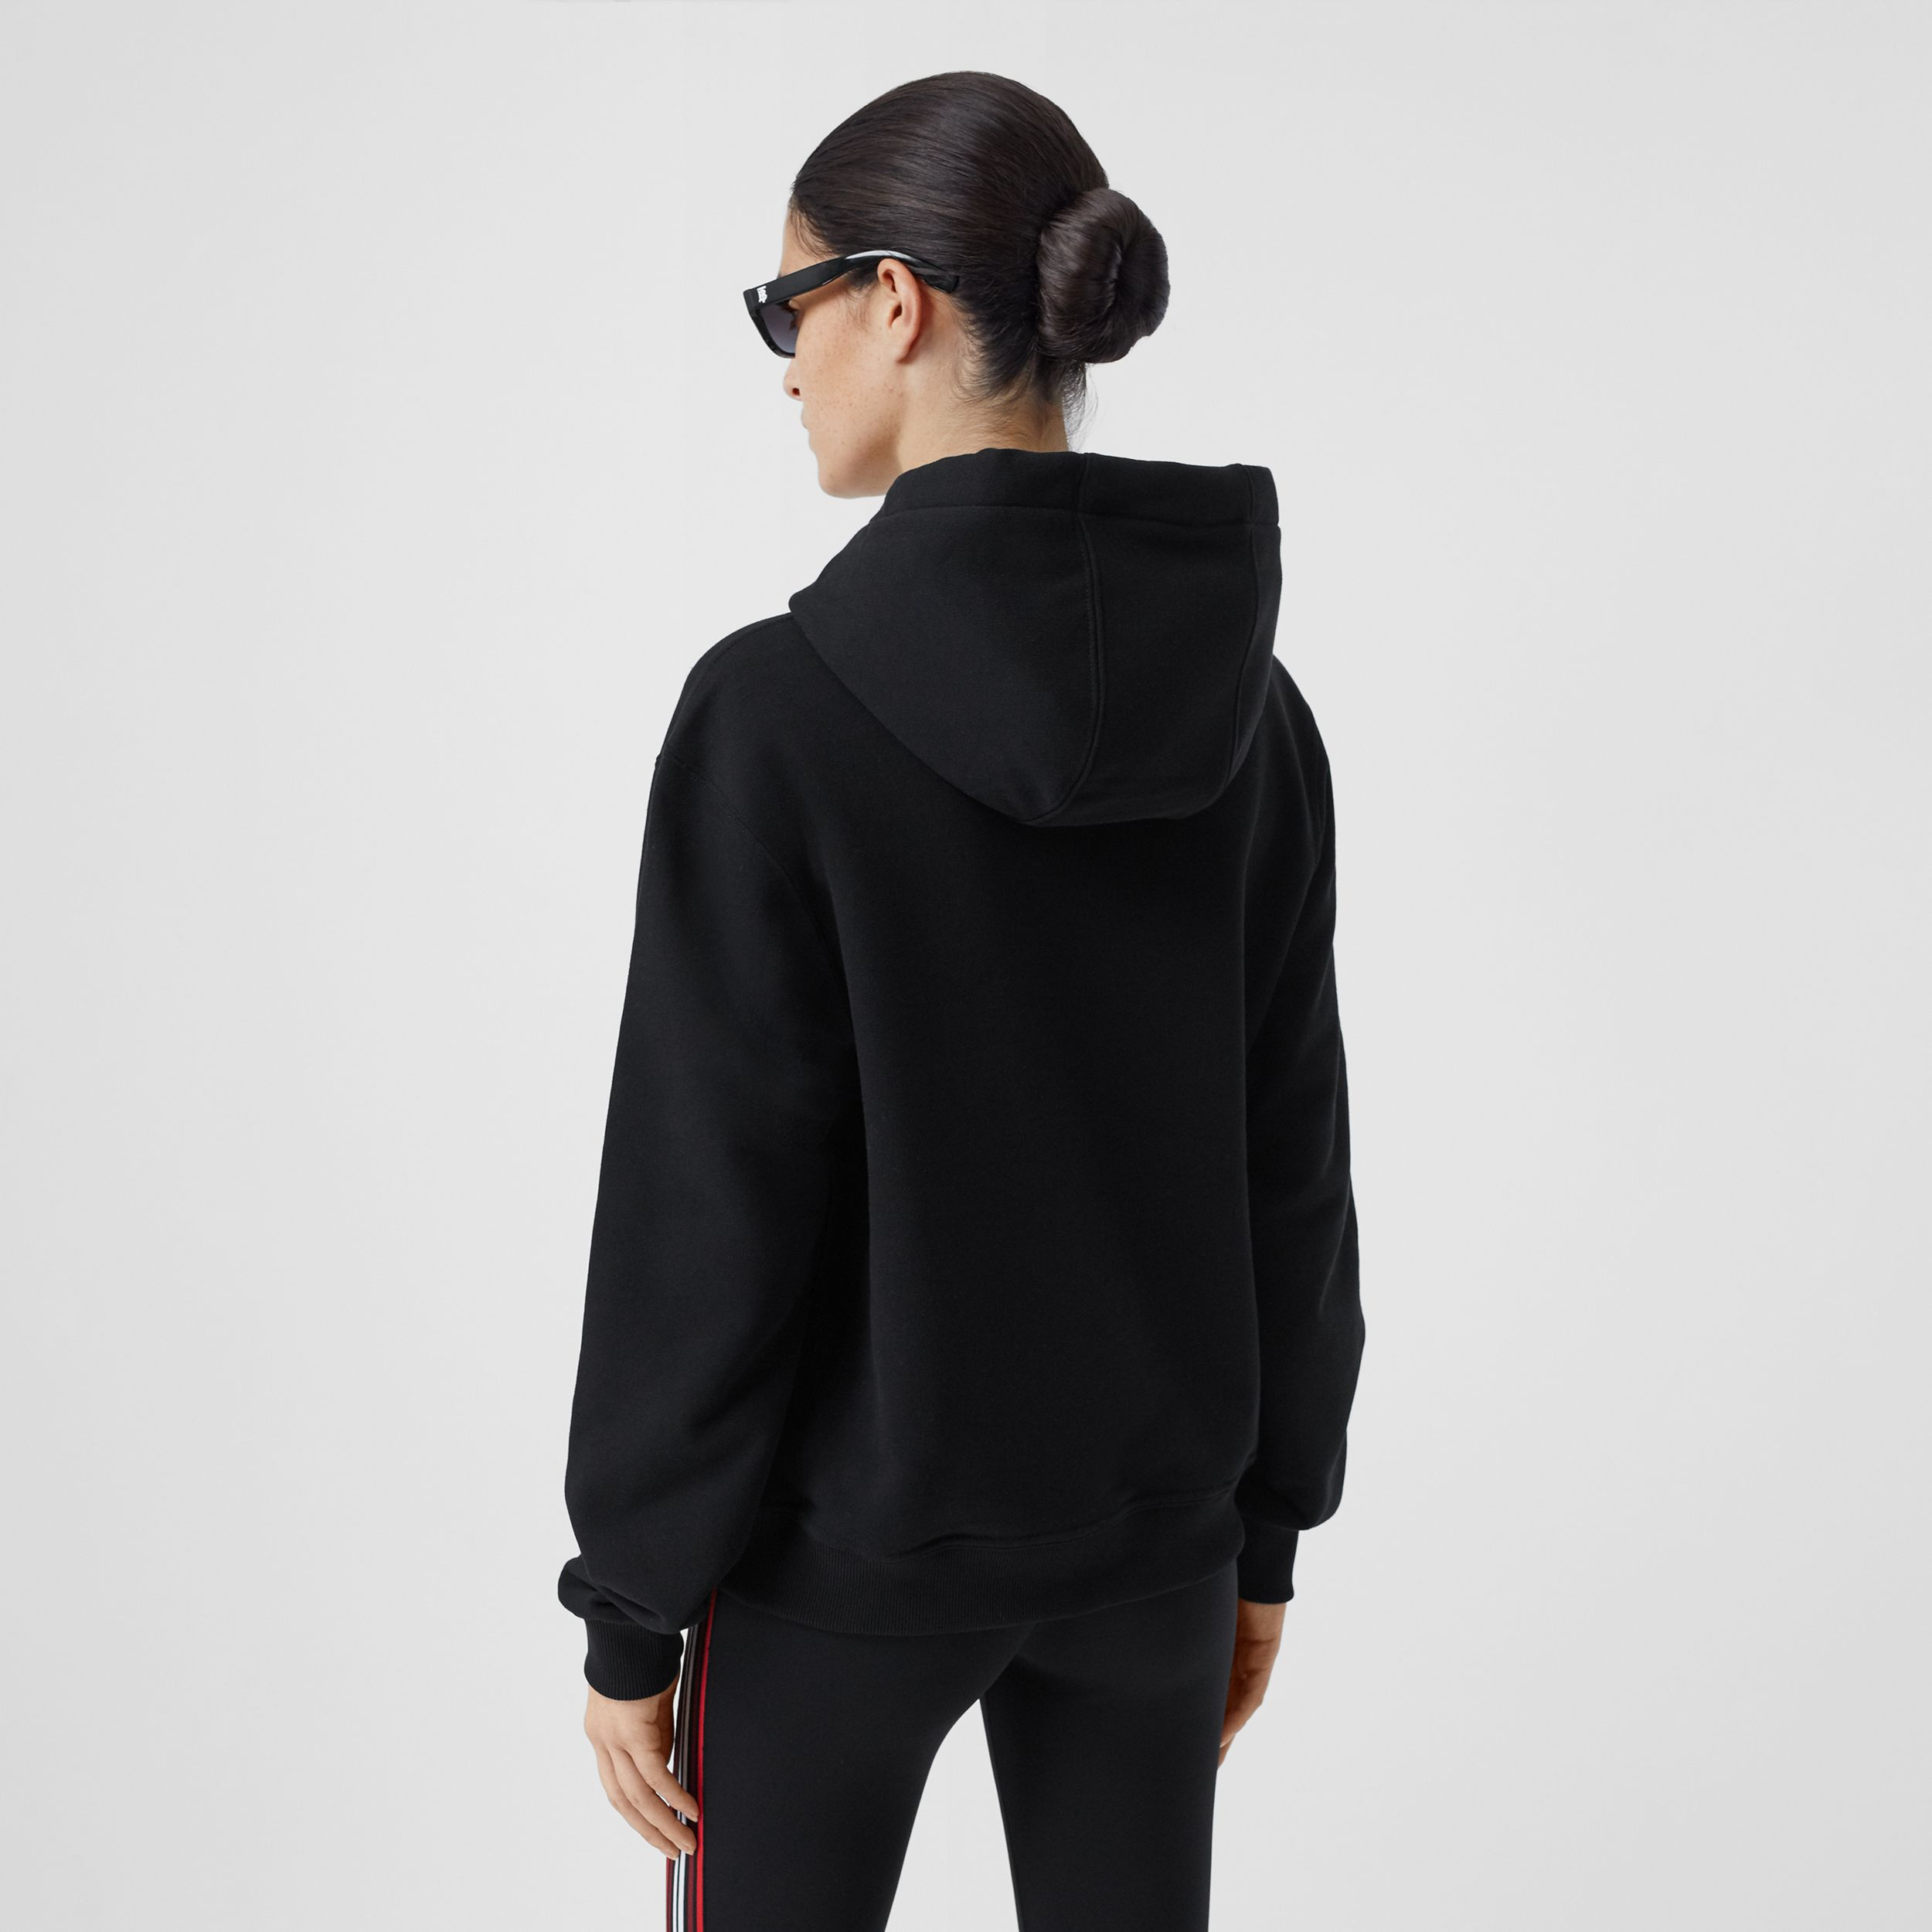 Monogram Motif Cotton Hoodie in Black - Women | Burberry Hong Kong S.A.R. - 3